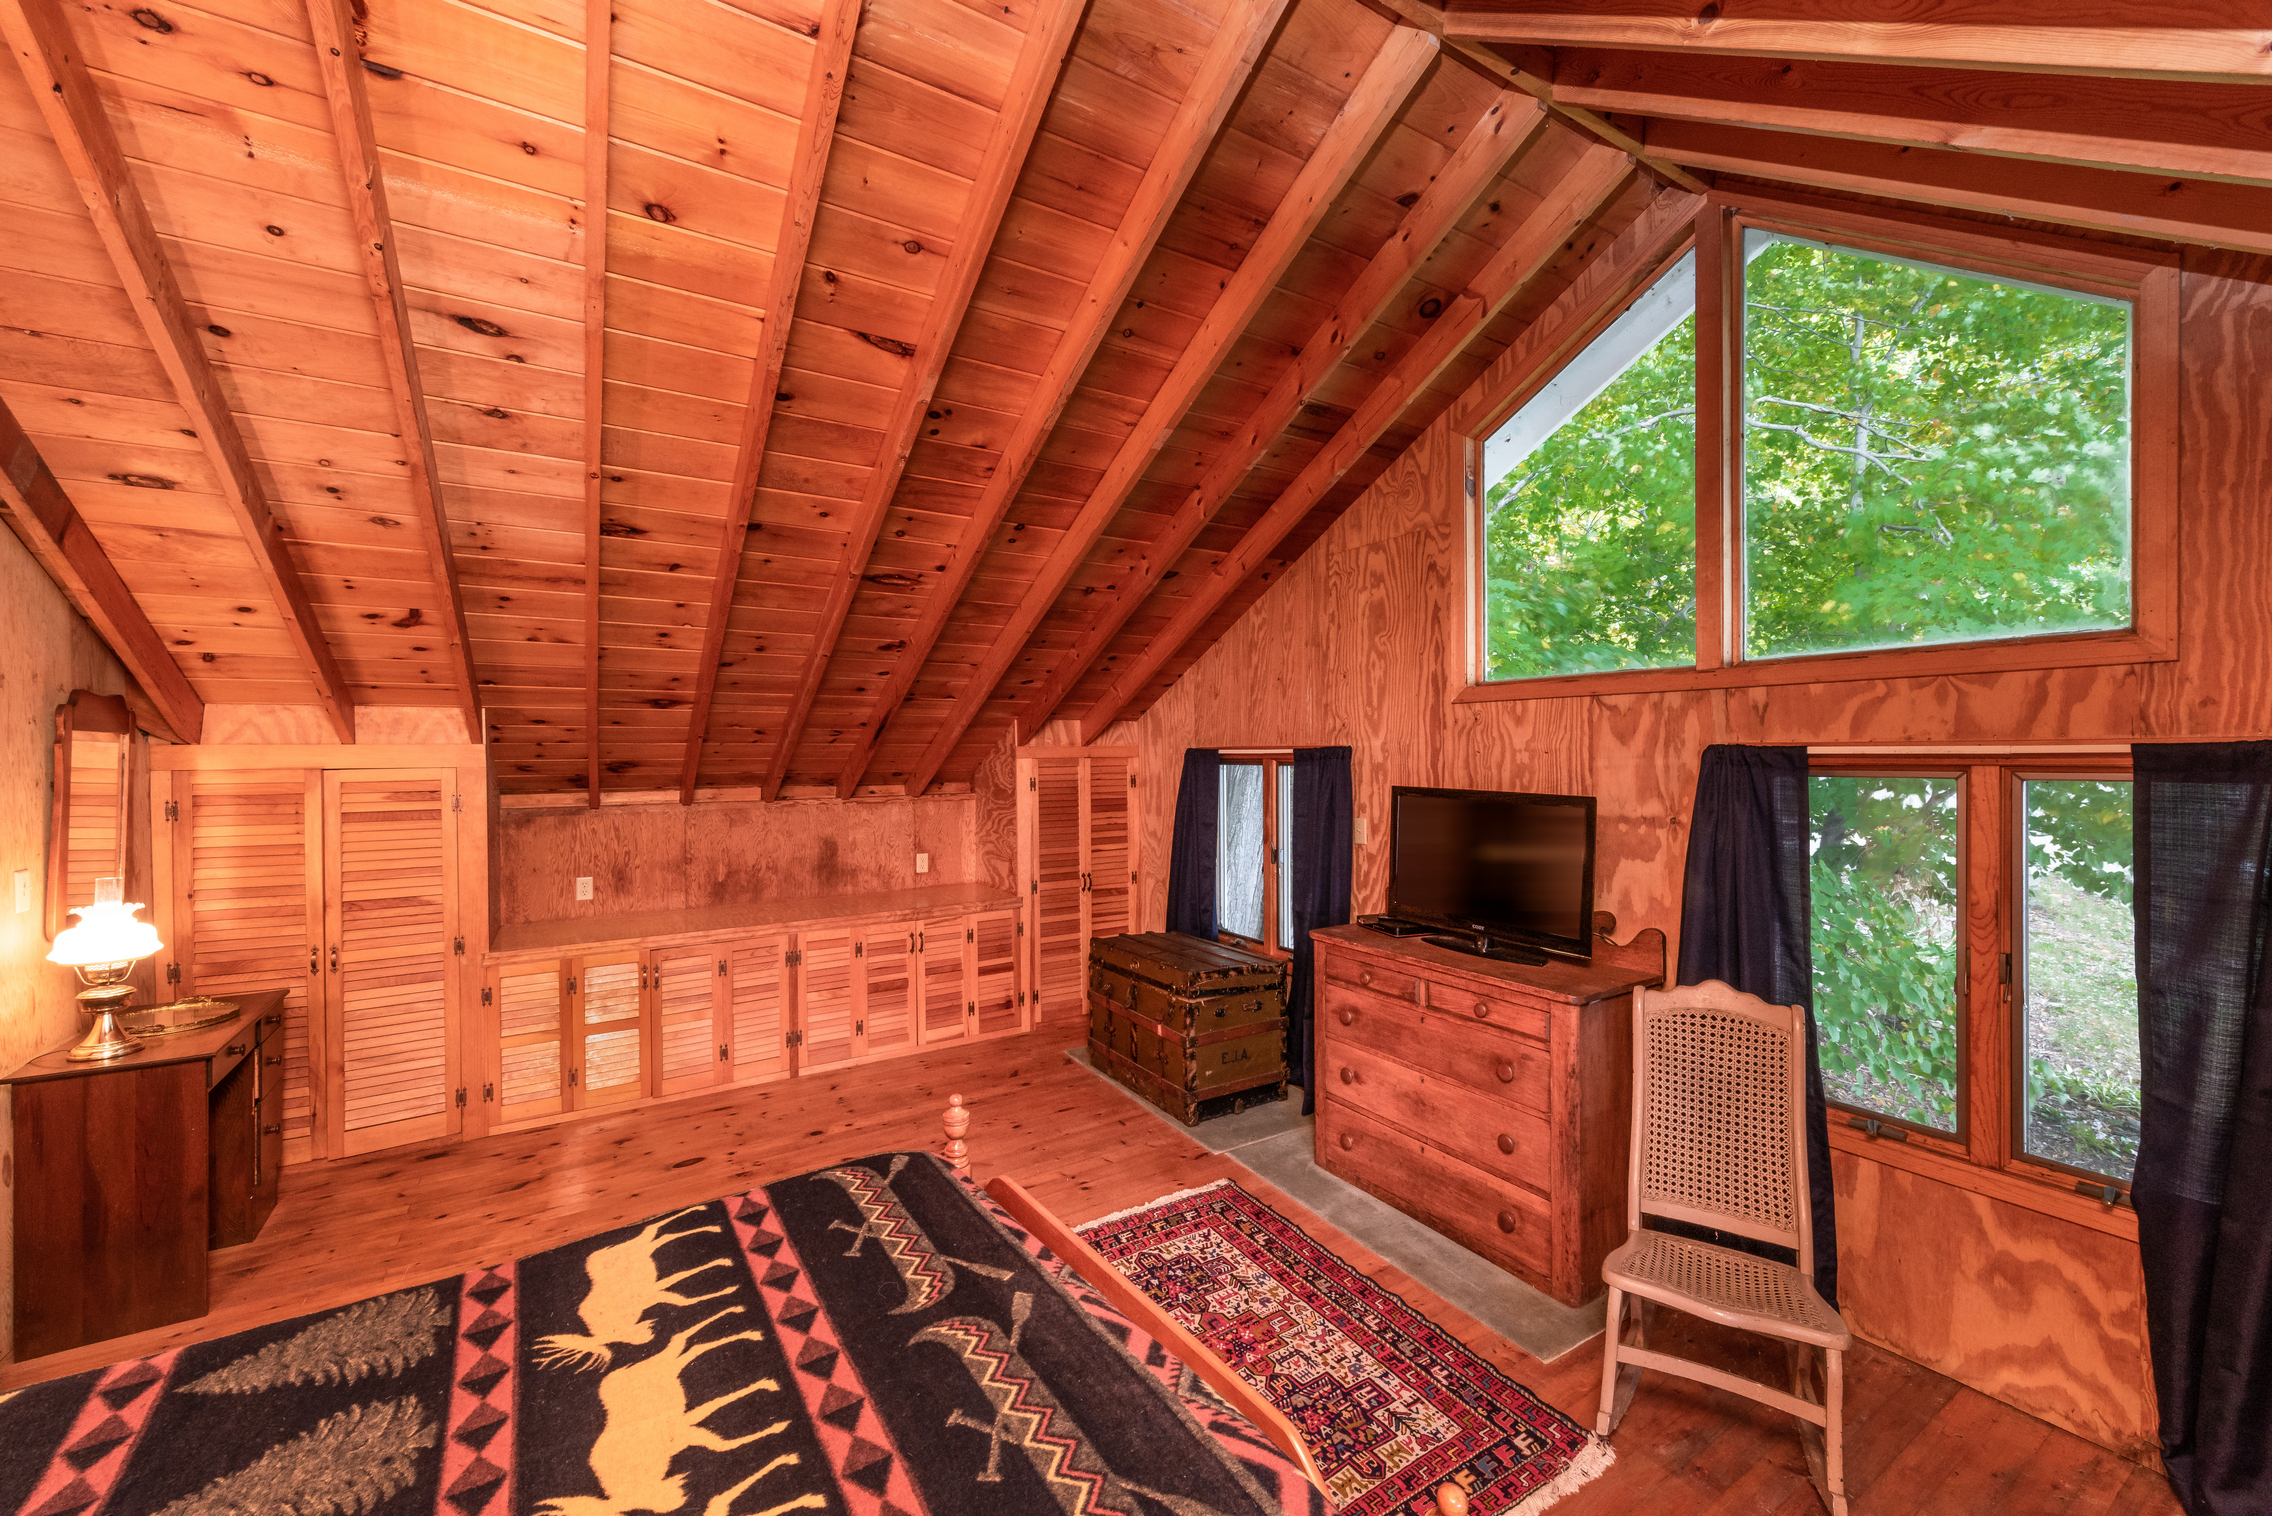 26 Camp Longhorn, 974 Ten Mile Point, Skaneateles, NY 13152, For Sale .JPG